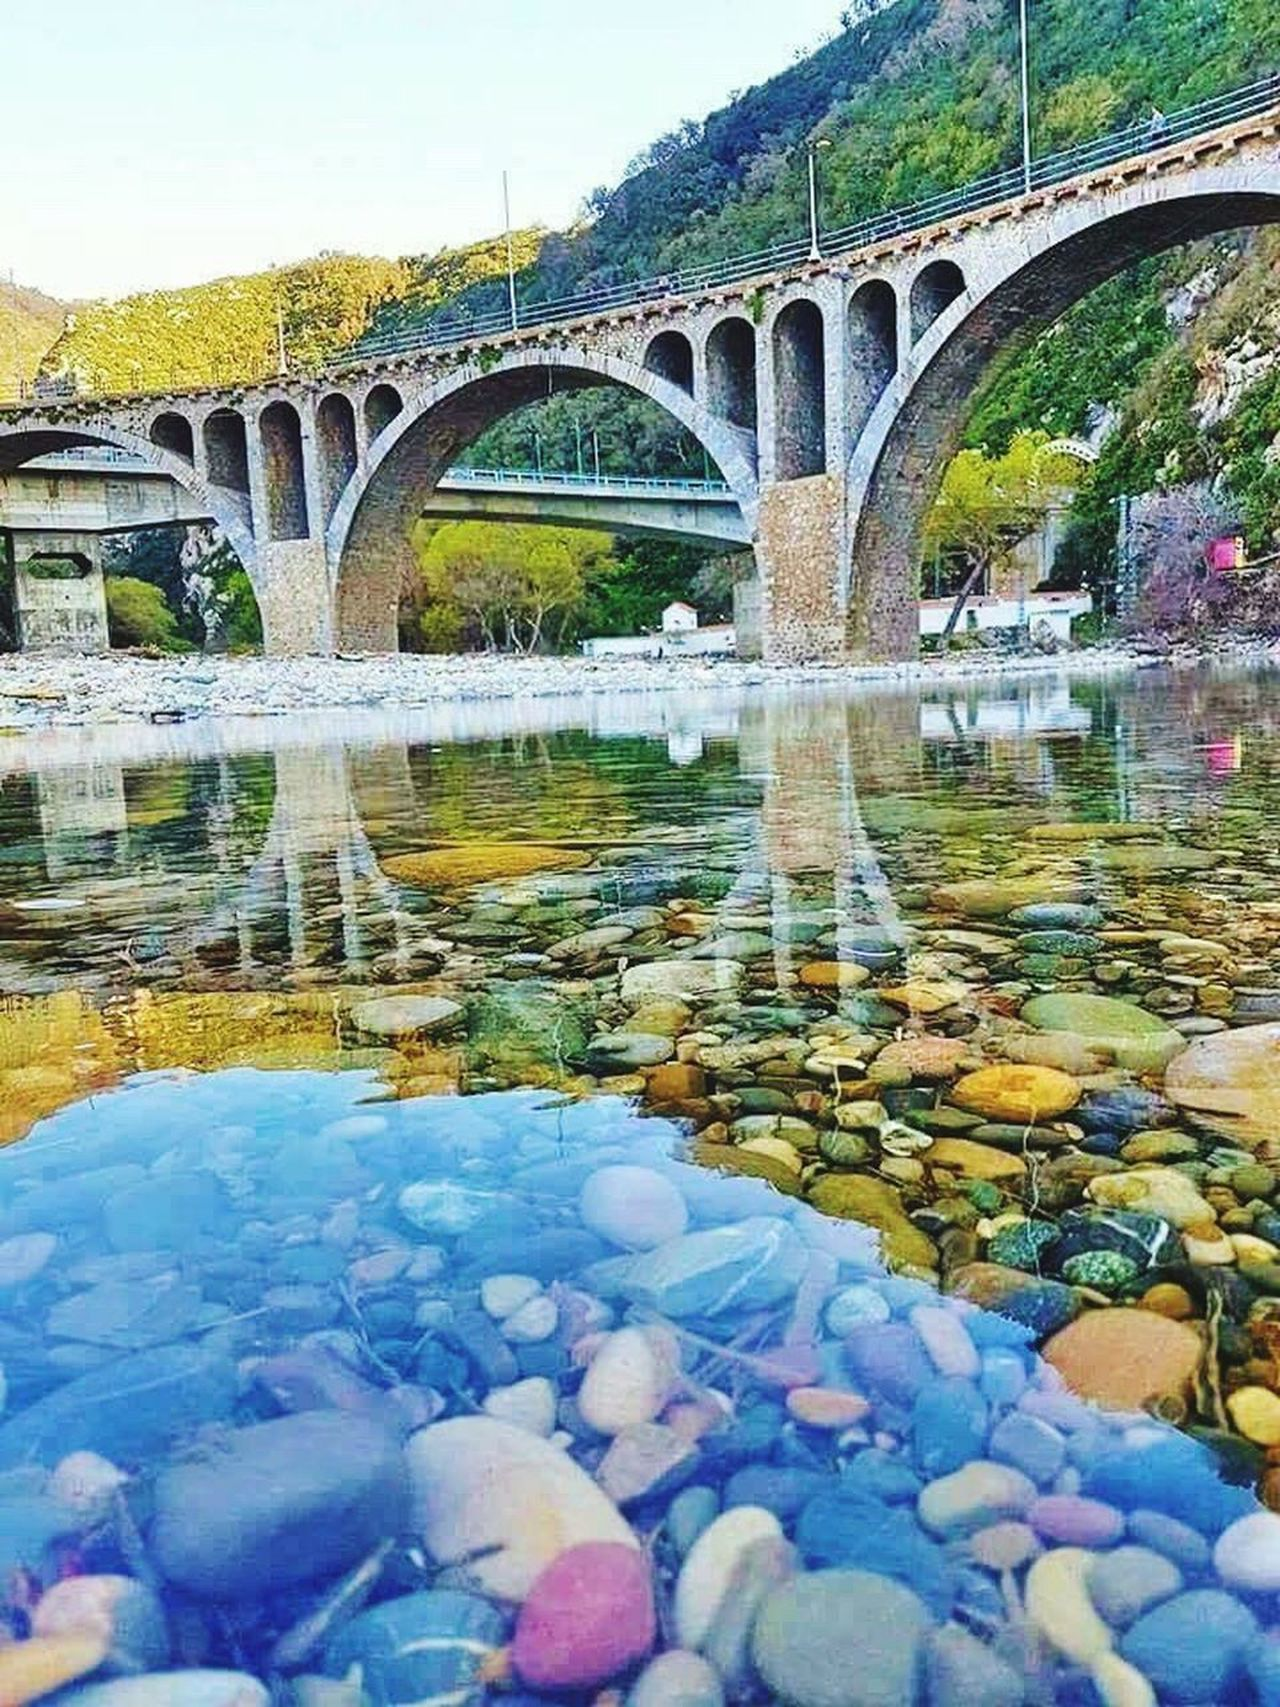 Jijel-Algerie Bridge - Man Made Structure Arch Water Arch Bridge Connection Reflection Architecture Built Structure River Outdoors Day No People Nature Jijel Jijel Algérie Jijel Algeria. Swimming Algérie Beachphotography Algeria Photography Relaxation Vacations EyeEm Algeria Beauty In Nature